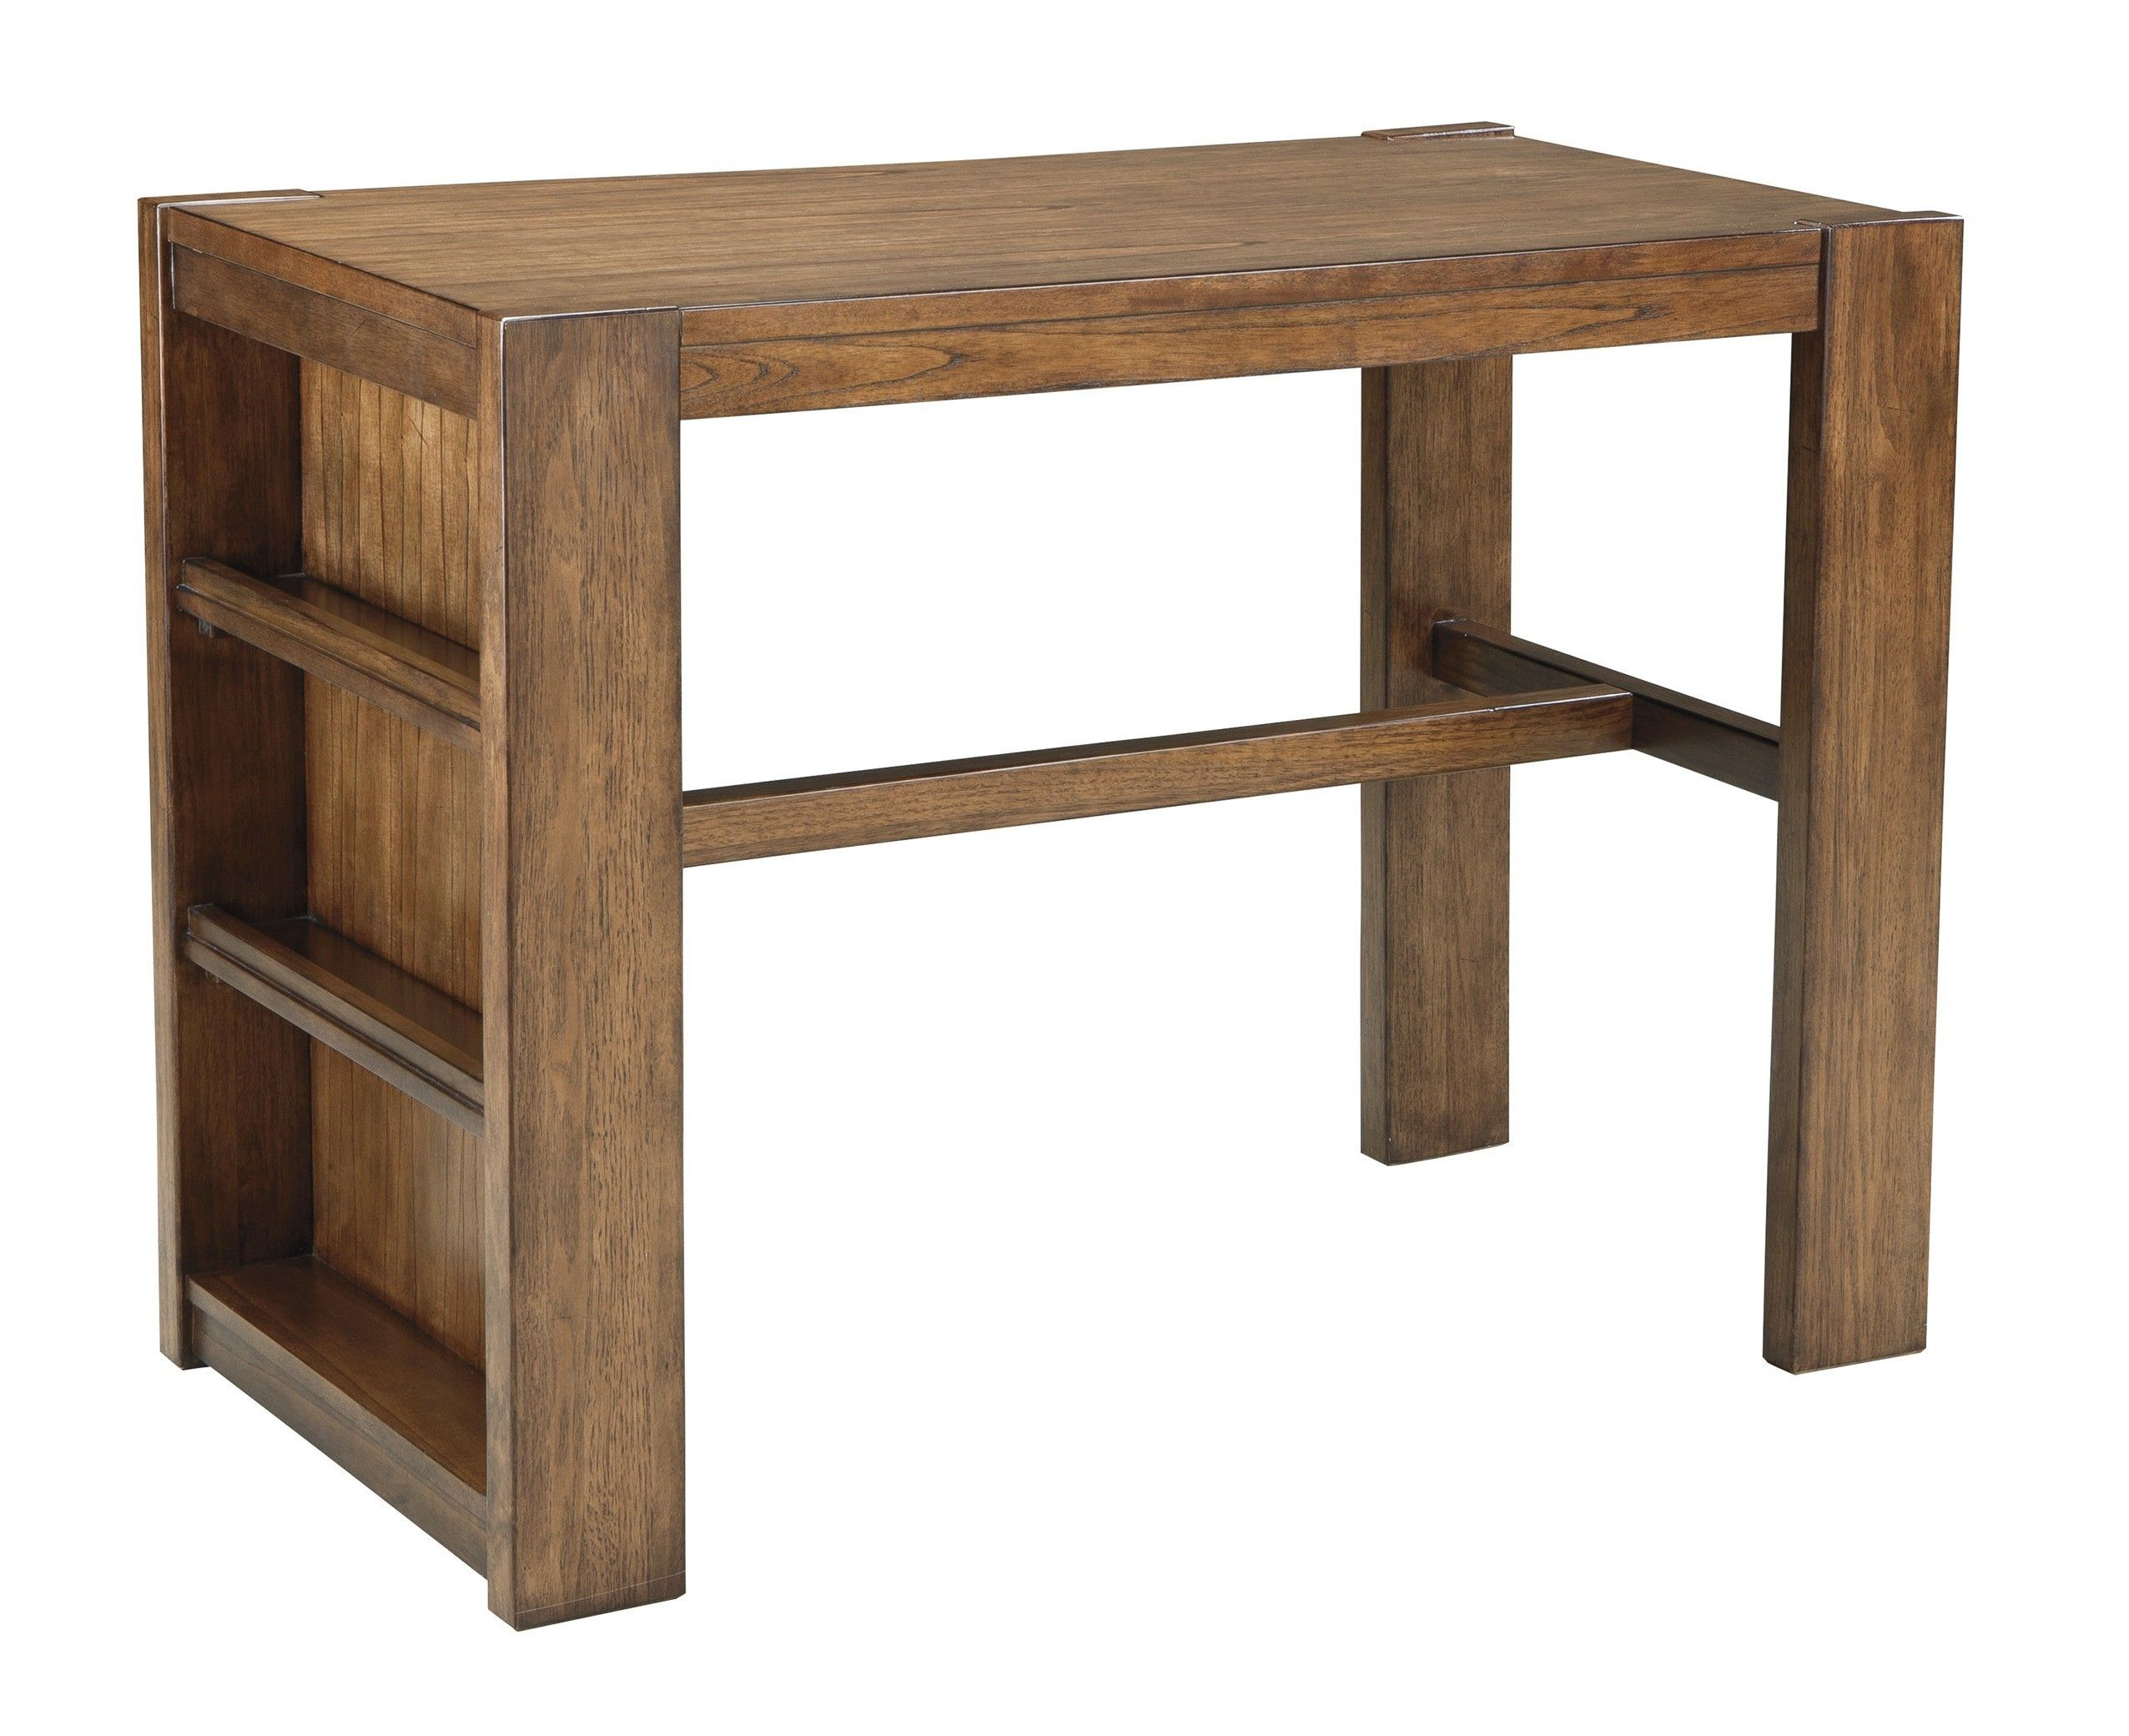 Image result for counter height table with storage | Counter Height ...